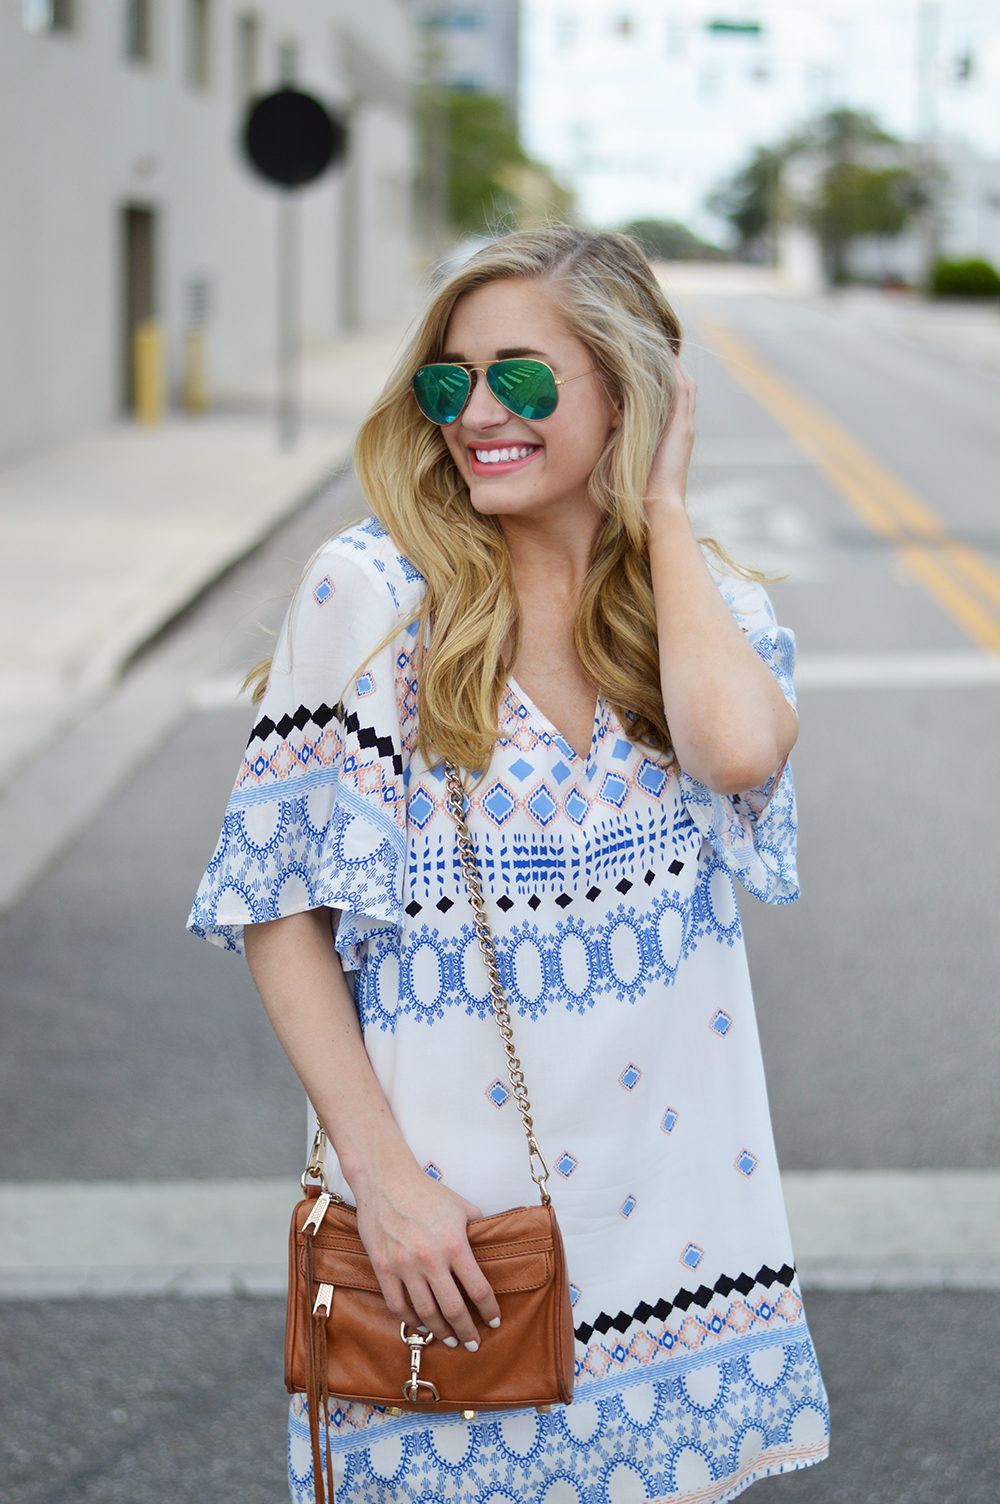 styelled-blog-glam-glam-clothing-summer-style-summer-wear-sundress-sun-dress-white-dress-summer-print-rebecca-minkoff-dolce-vita-bell-sleeve-fashion-blogger-fblogger-style-blogger-03